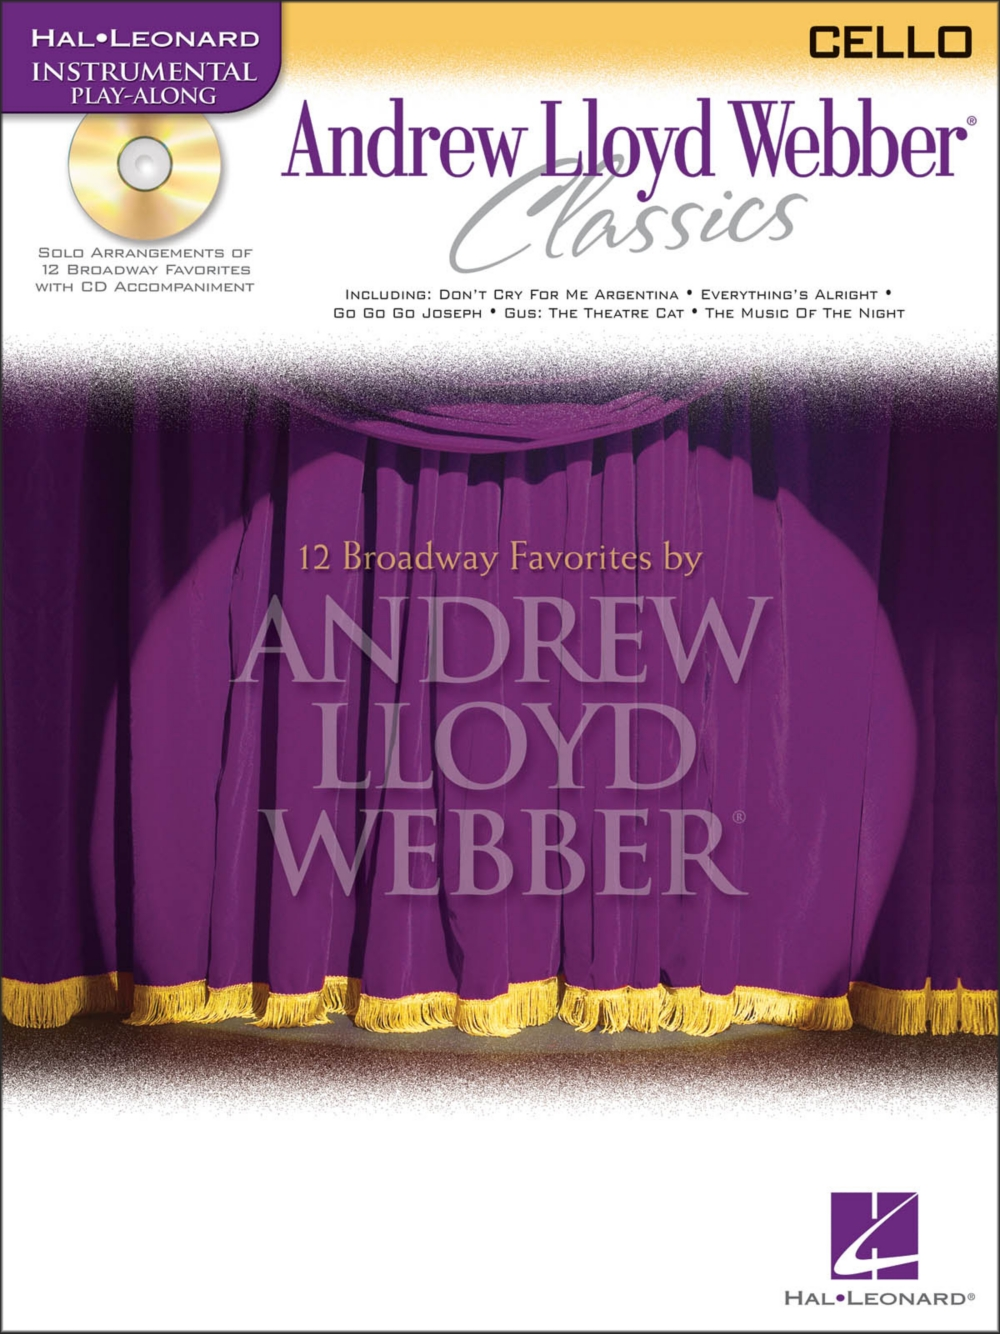 Hal Leonard Andrew Lloyd Webber Classics for Cello Book CD by